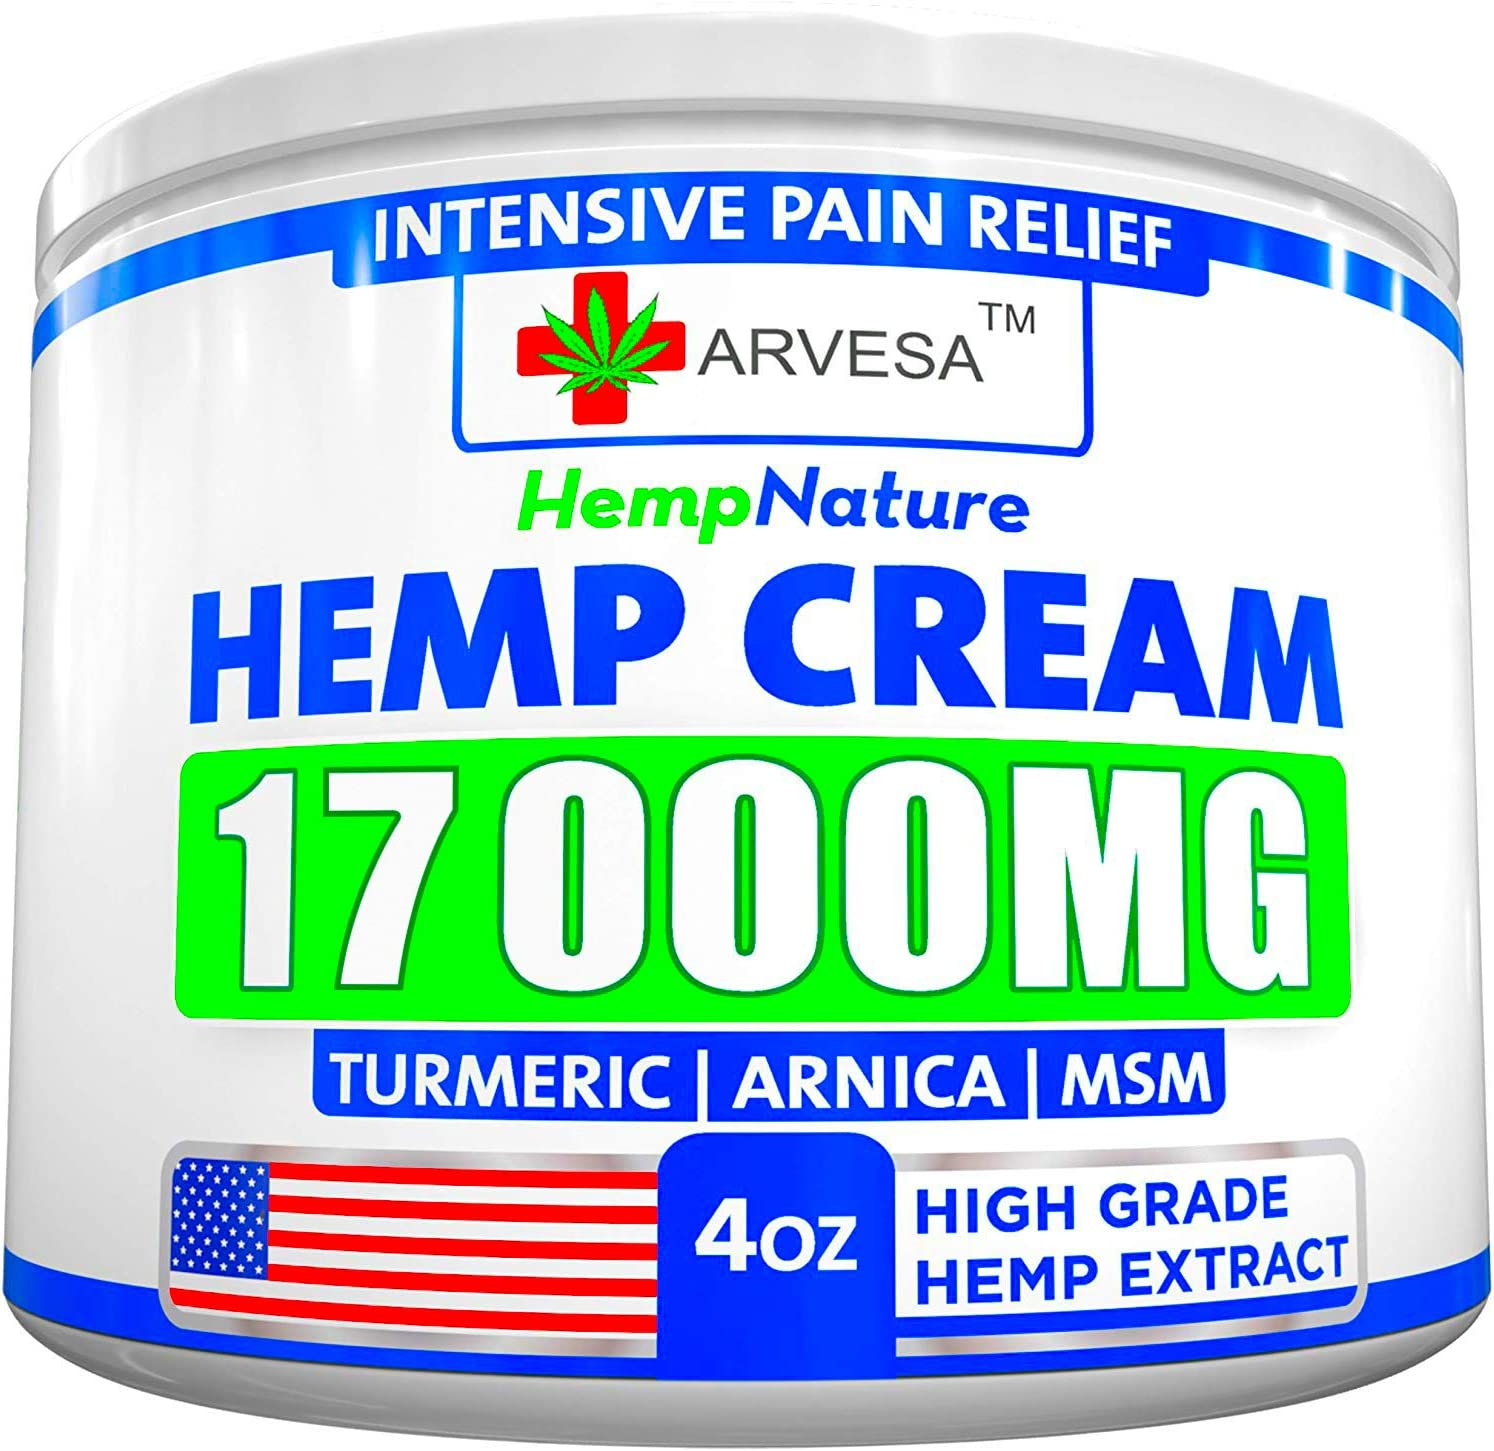 Hemp Pain Relief Cream - 17 000 MG - Made in USA - 4OZ - Relieves Muscle, Joint Pain - Lower Back Pain - Inflammation - Hemp Oil Extract with MSM - EMU Oil - Arnica - Turmeric